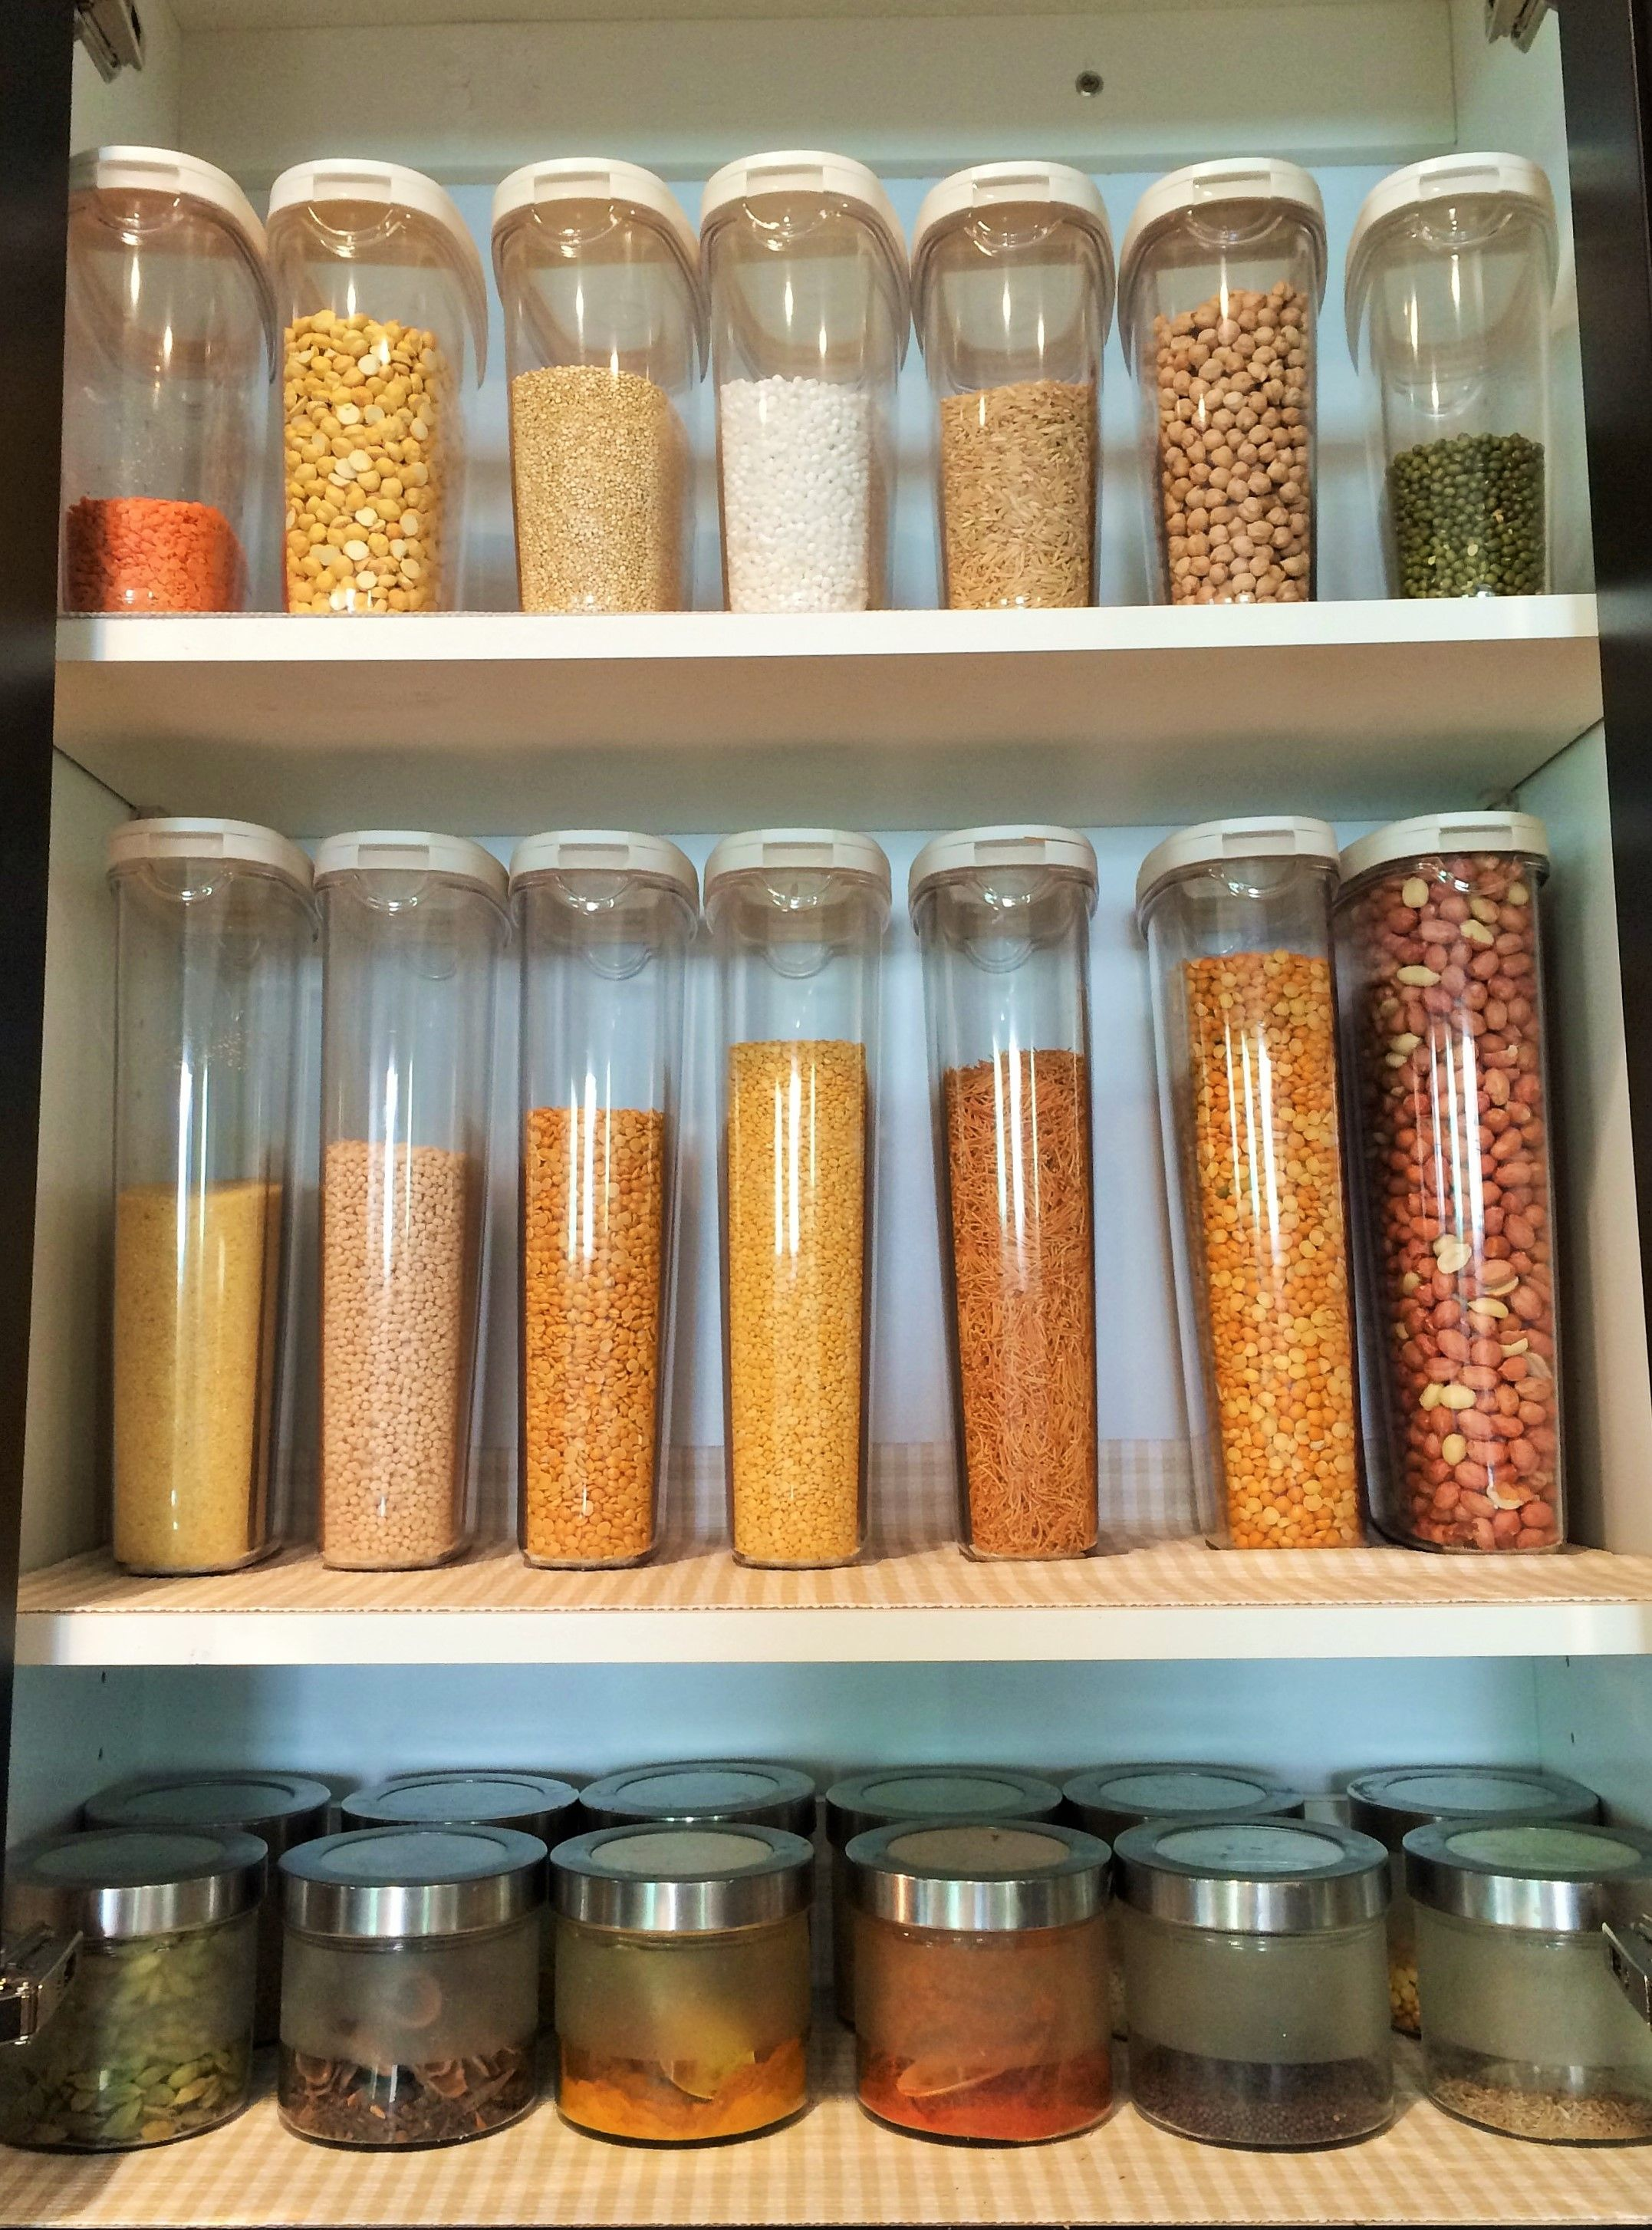 Creative Spice Storage Organize Your Pulses Beans And Spices Using Ikea